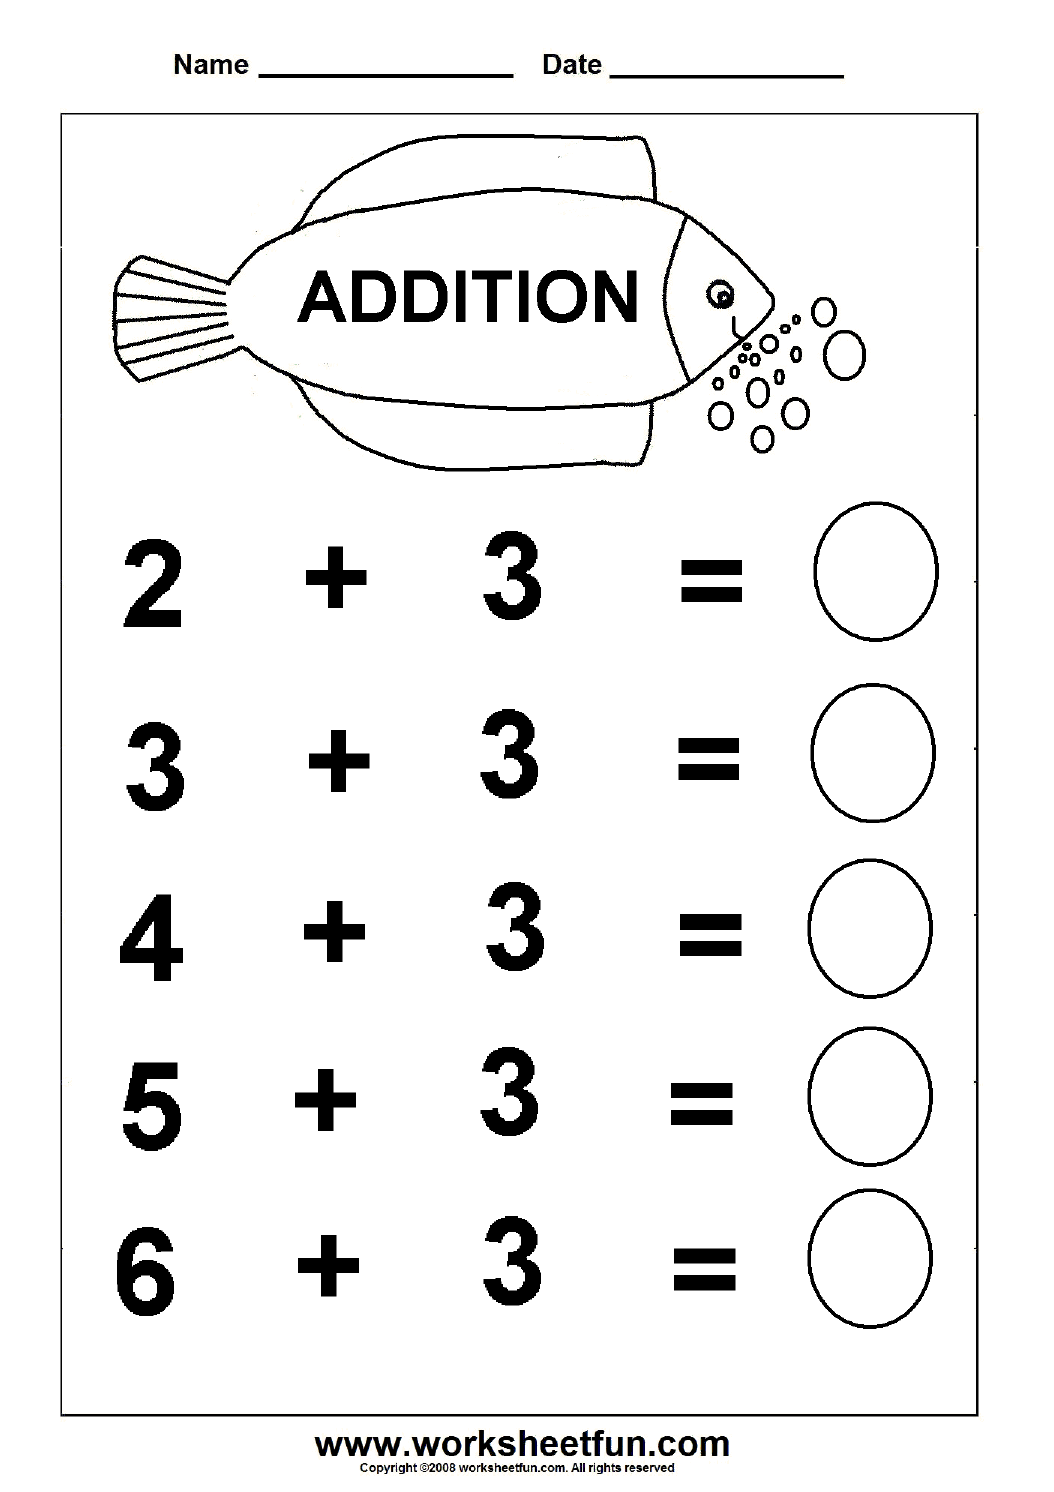 worksheet Basic Addition Worksheets addition basic facts free printable worksheets beginner 6 kindergarten worksheets